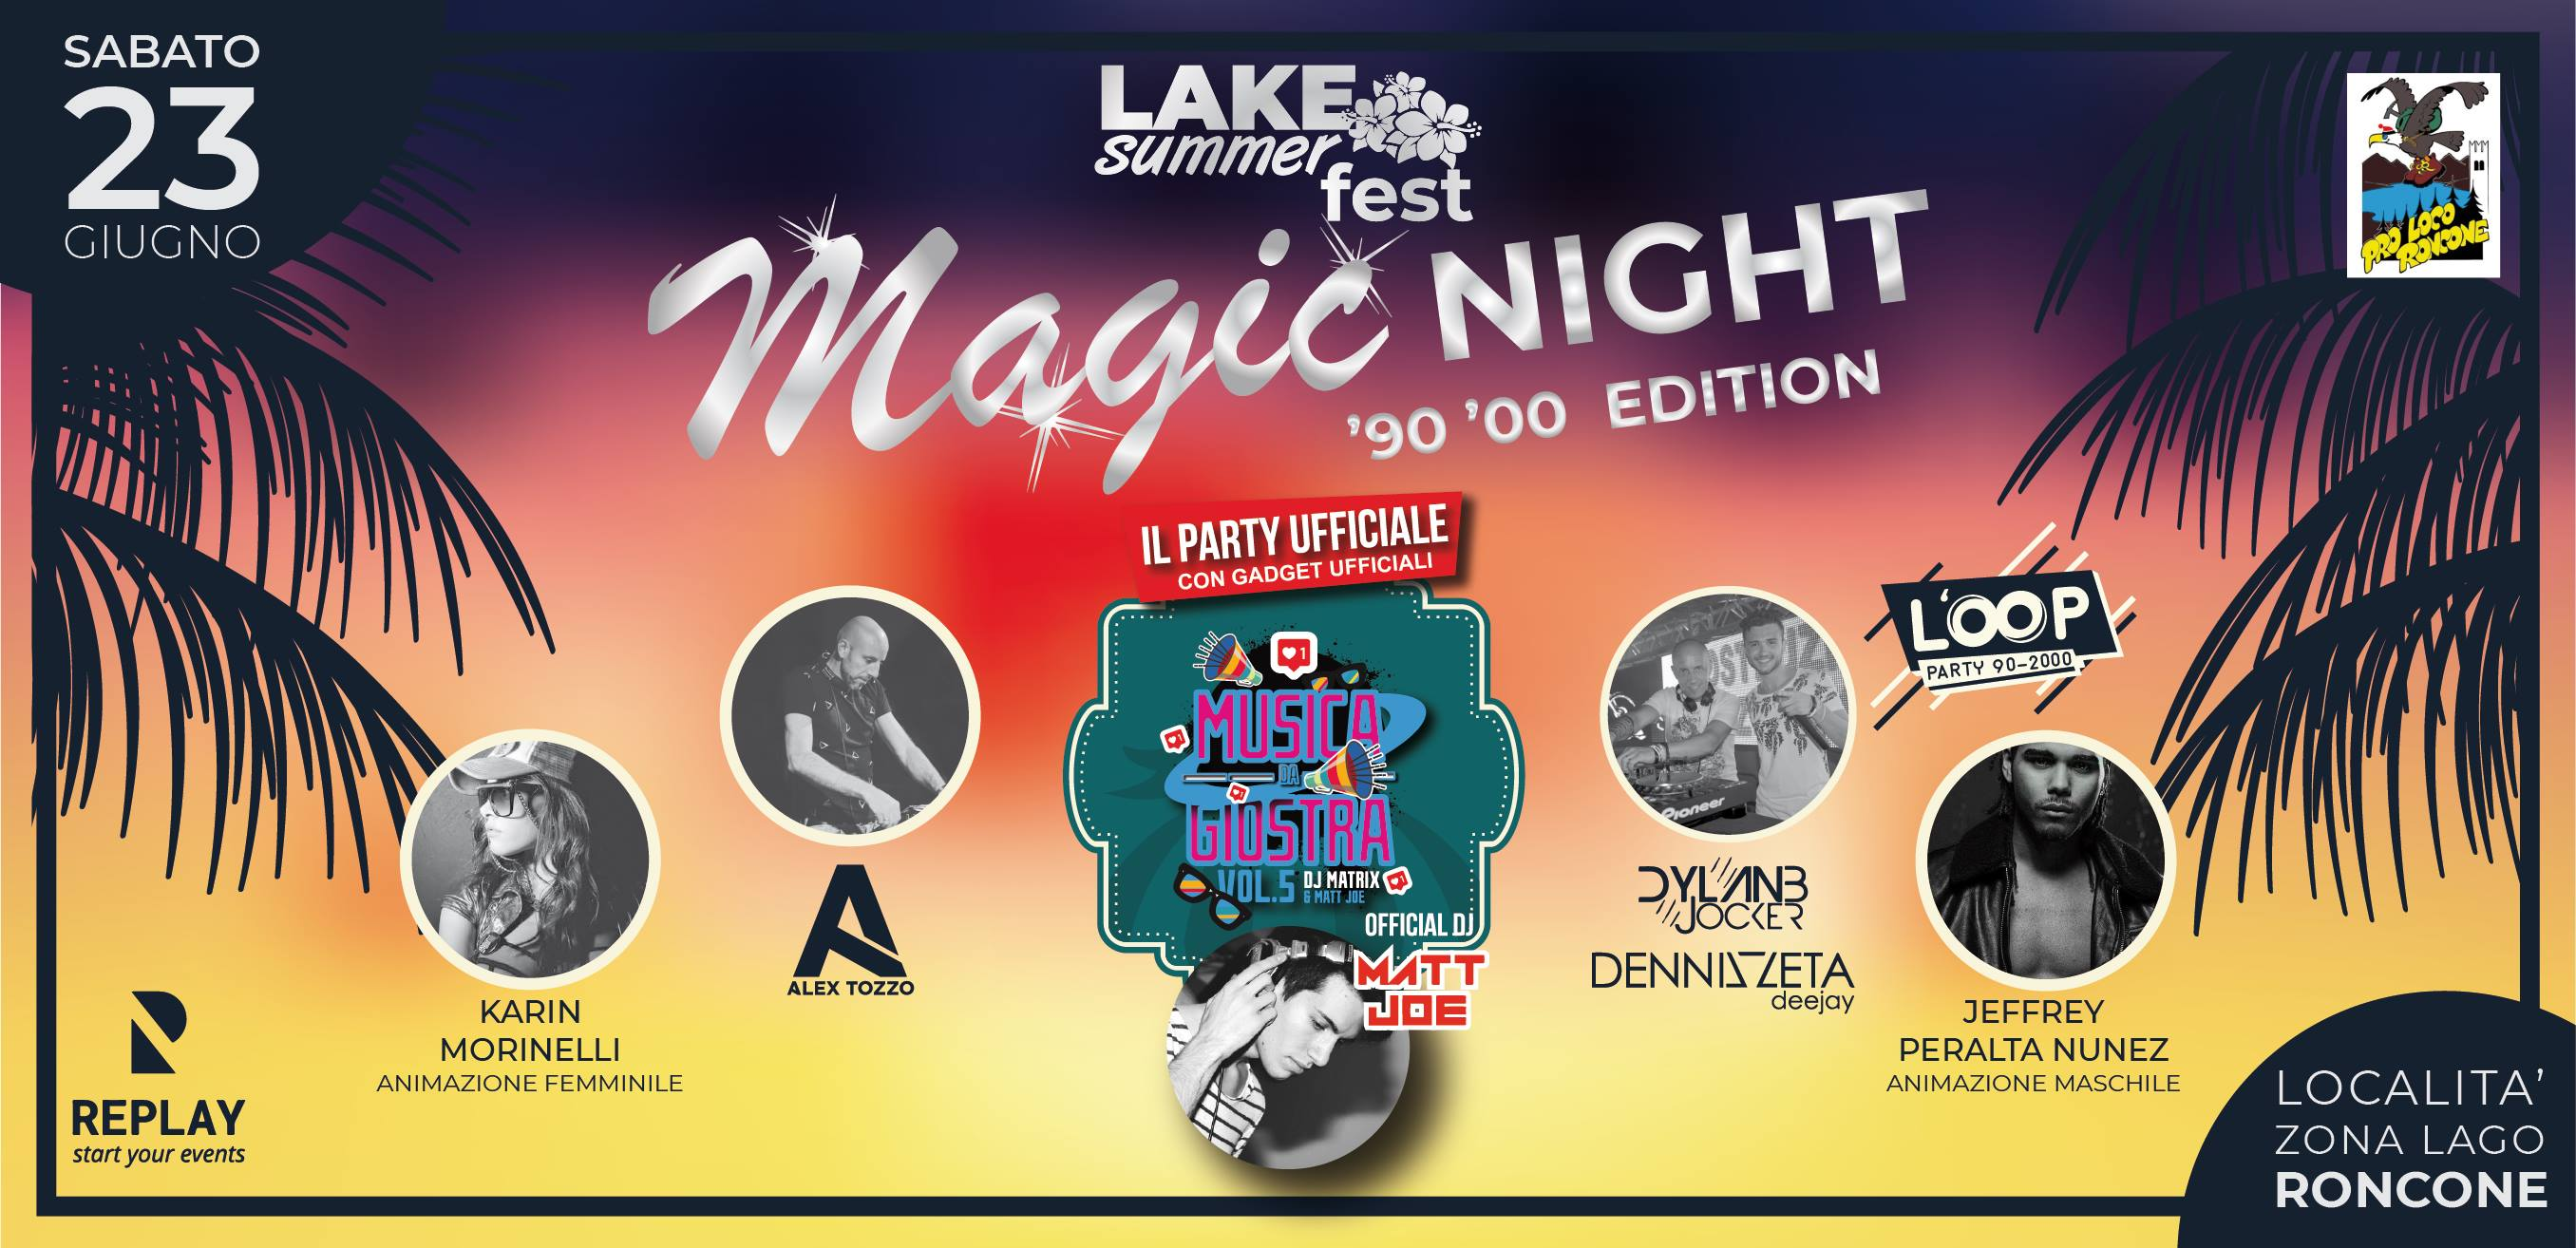 Lake summer fest – Magic night '90 '00 edition, grande festa sul lago di Roncone